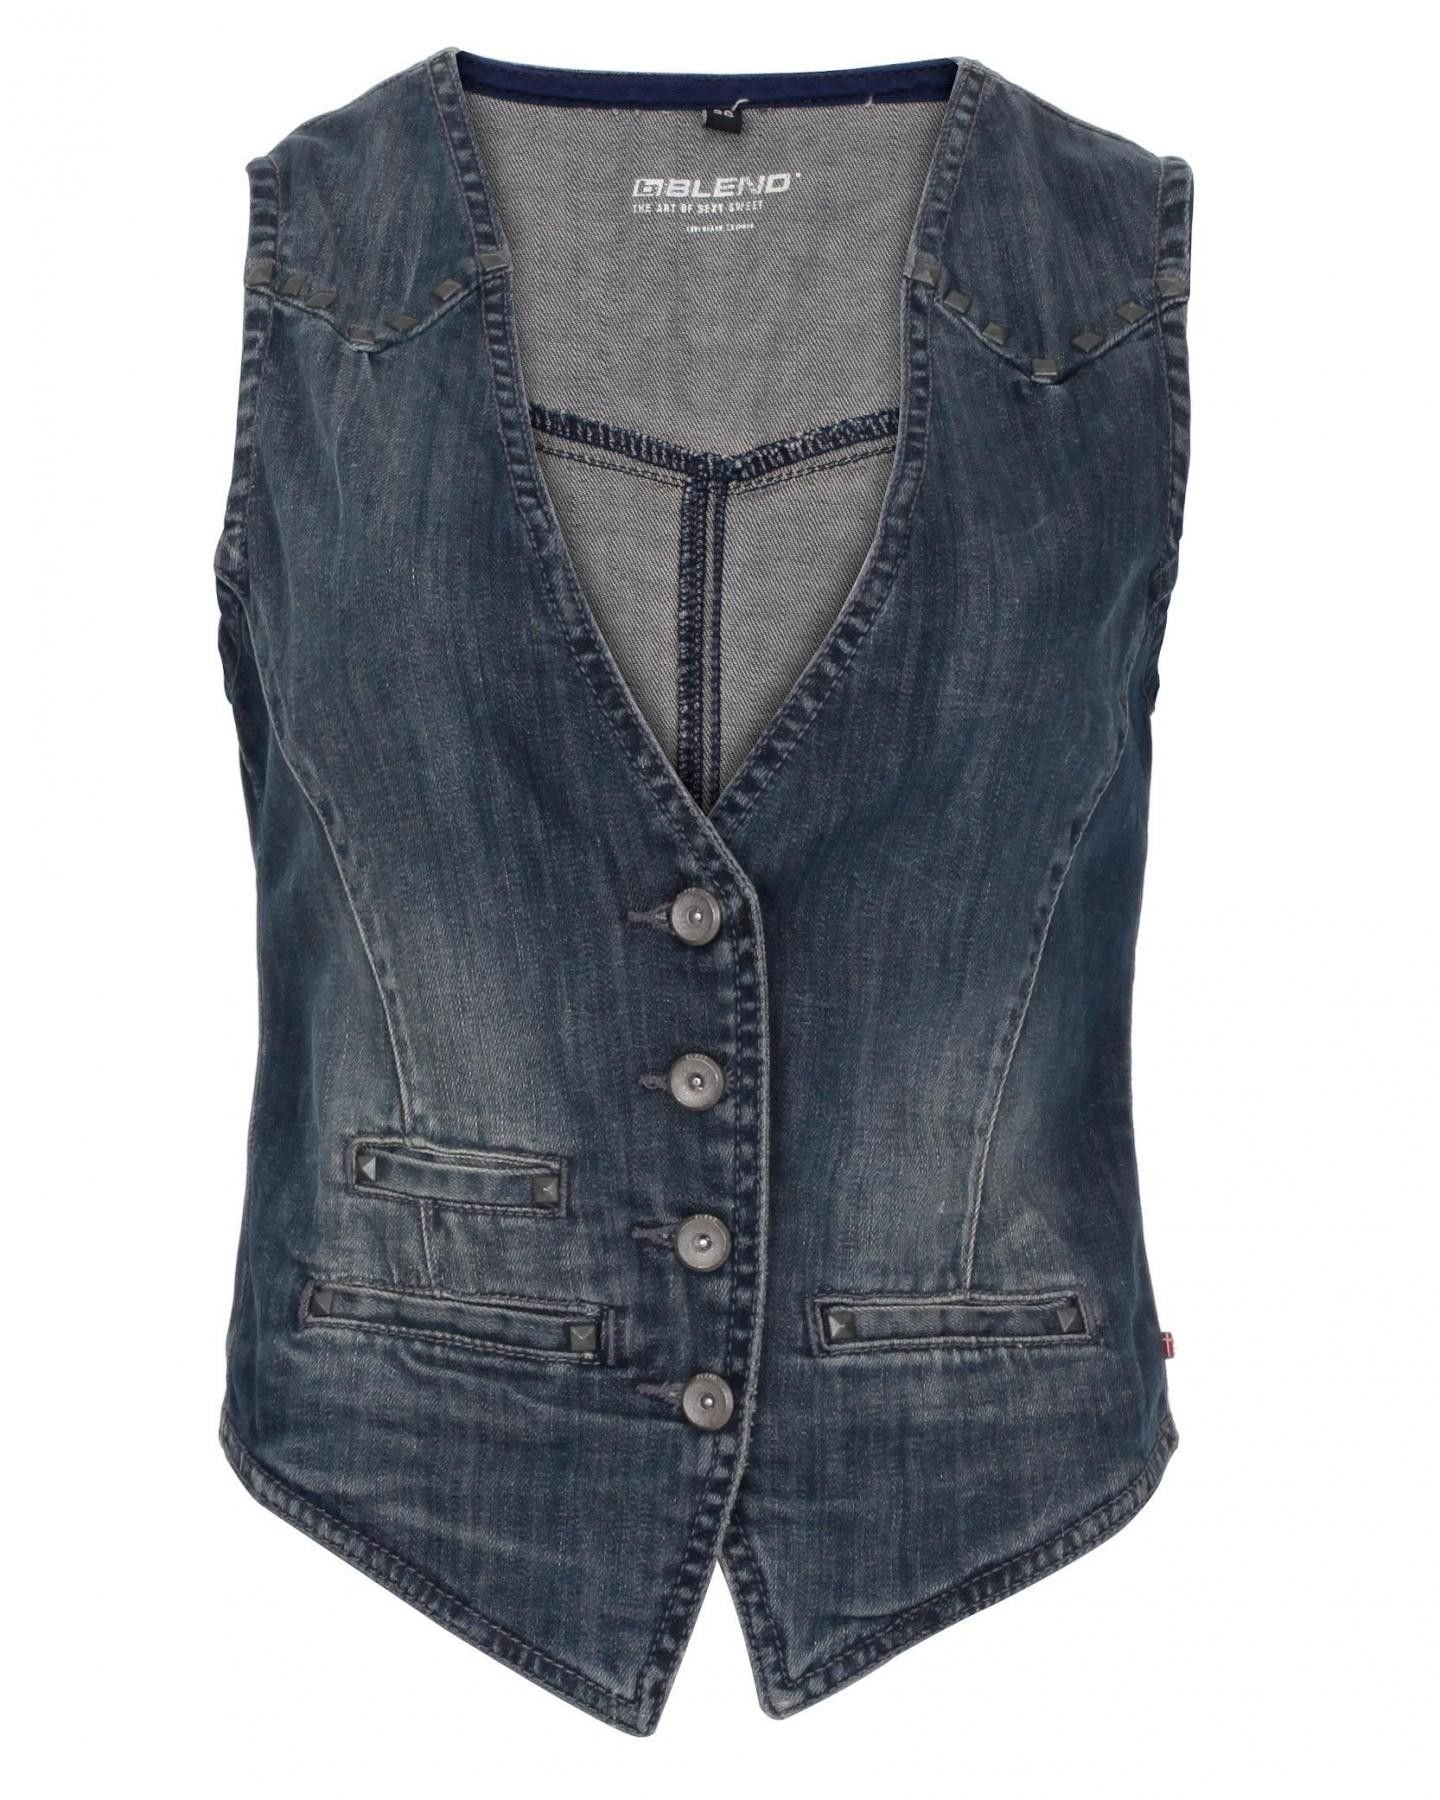 Denim Waistcoats make a big style statement! Pair it along a light scarf in contrast (color) to make the the right impact! Pic->blueinc.co.uk